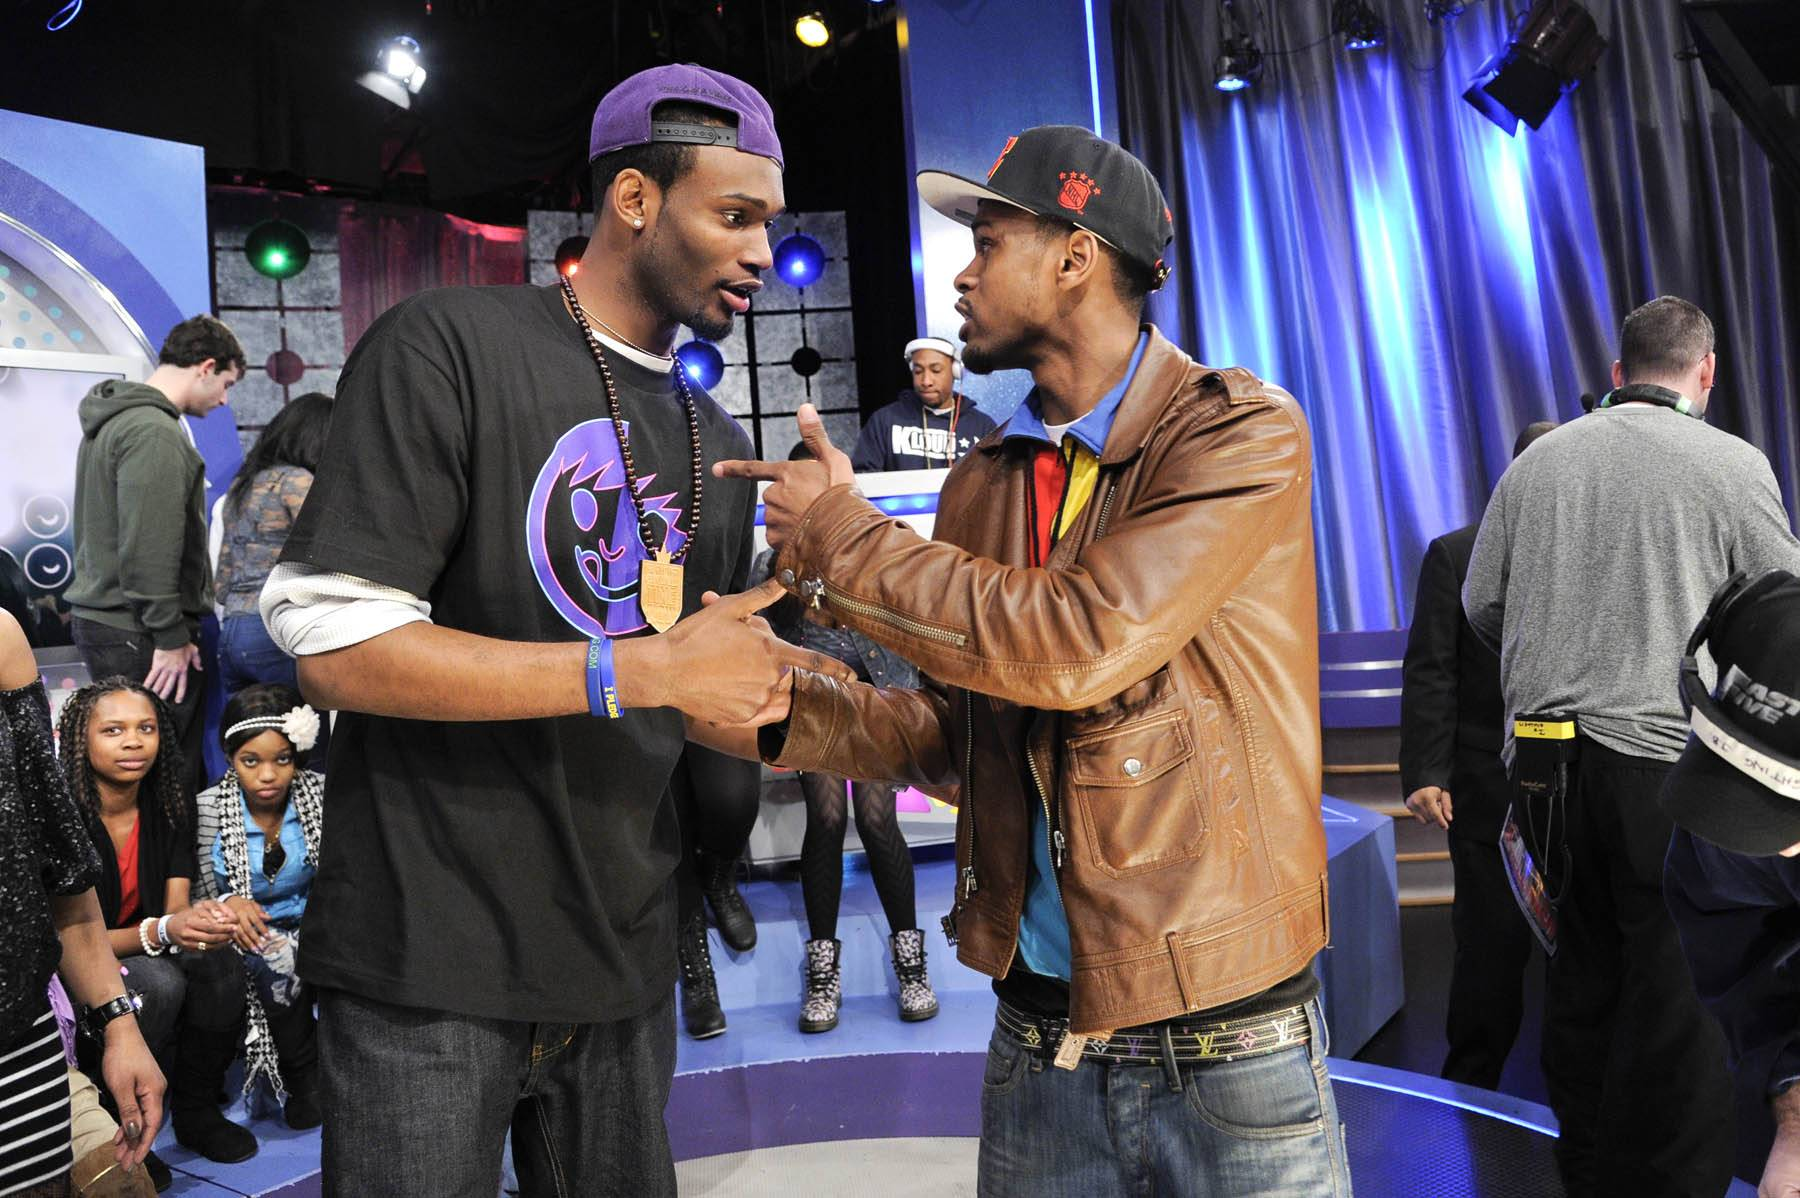 It's All Good - Proving that it is all good in the end, Freestyle Friday competitors Rio the Raptor and J. Dose discuss their battle at 106 & Park, January 27, 2012. (Photo: John Ricard / BET)